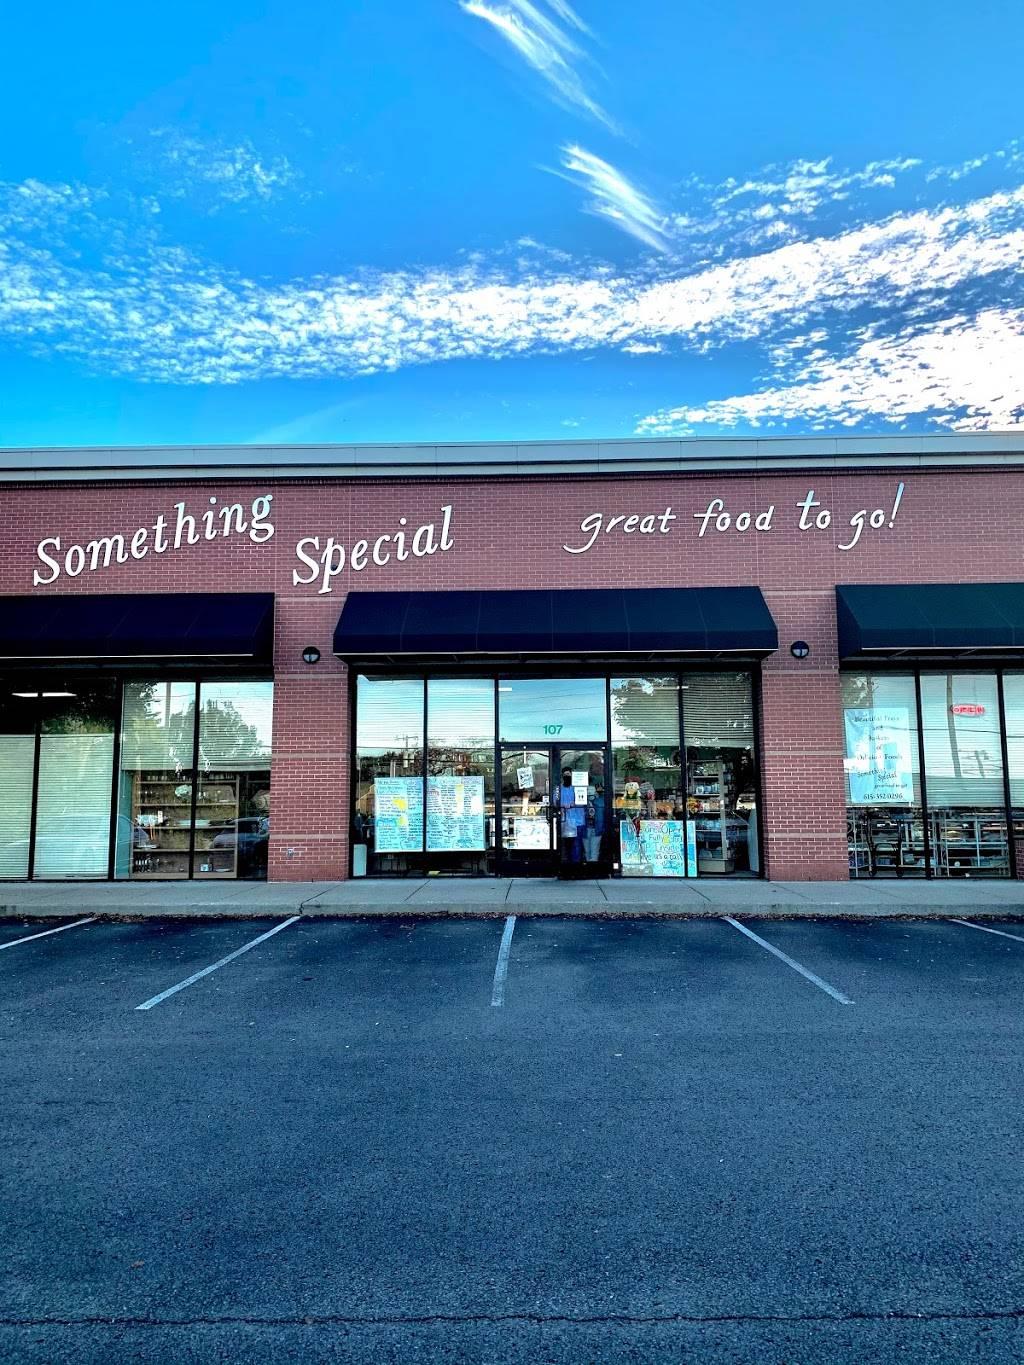 Something Special Carry Out Food/Party Time Catering | meal takeaway | 107 Heady Dr, Nashville, TN 37205, USA | 6153520296 OR +1 615-352-0296